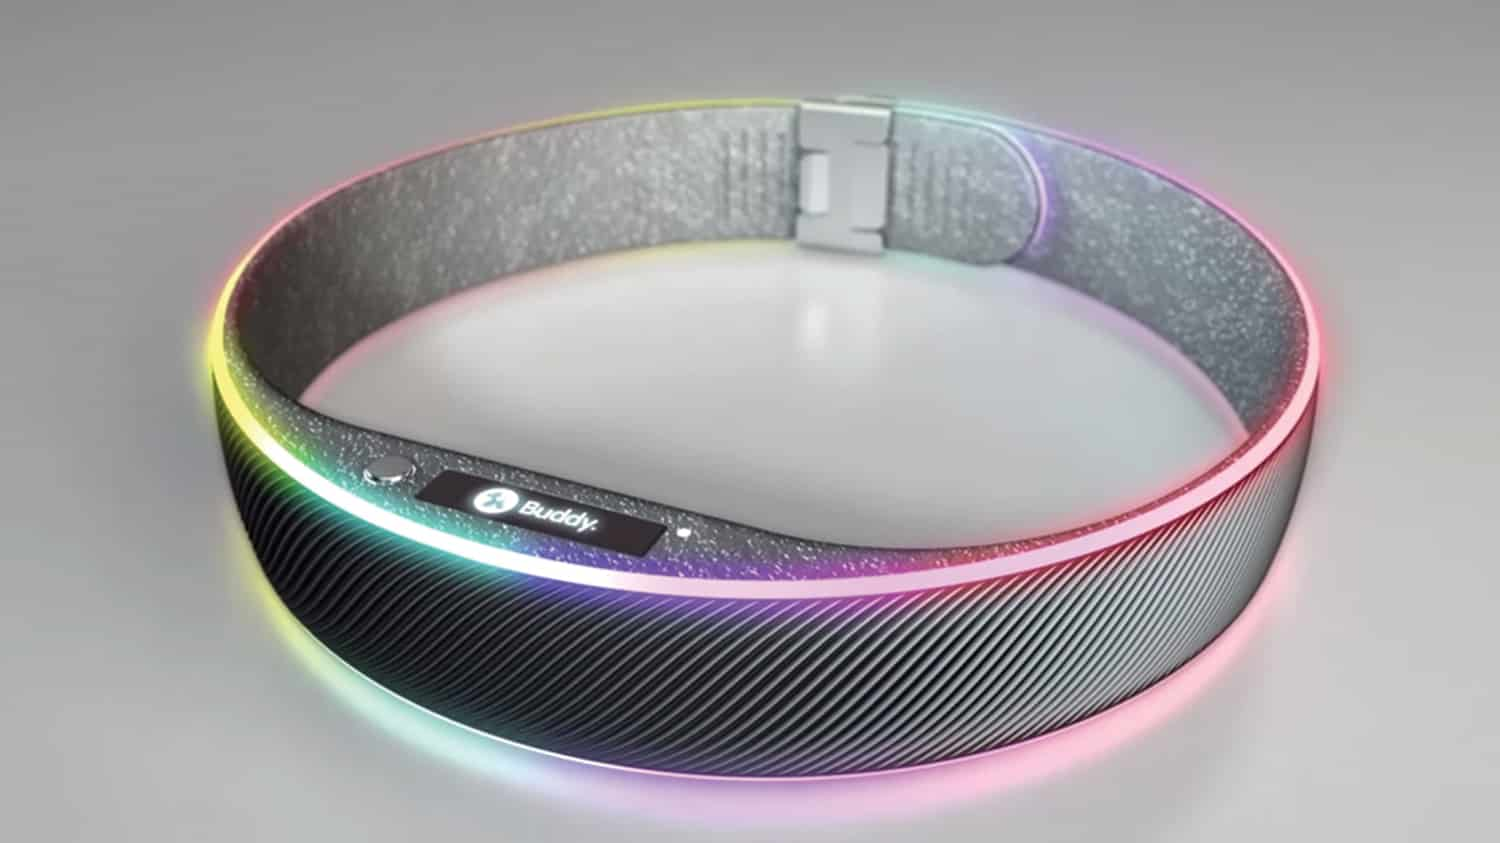 The smart collar that can track your pet's health and exercise habits